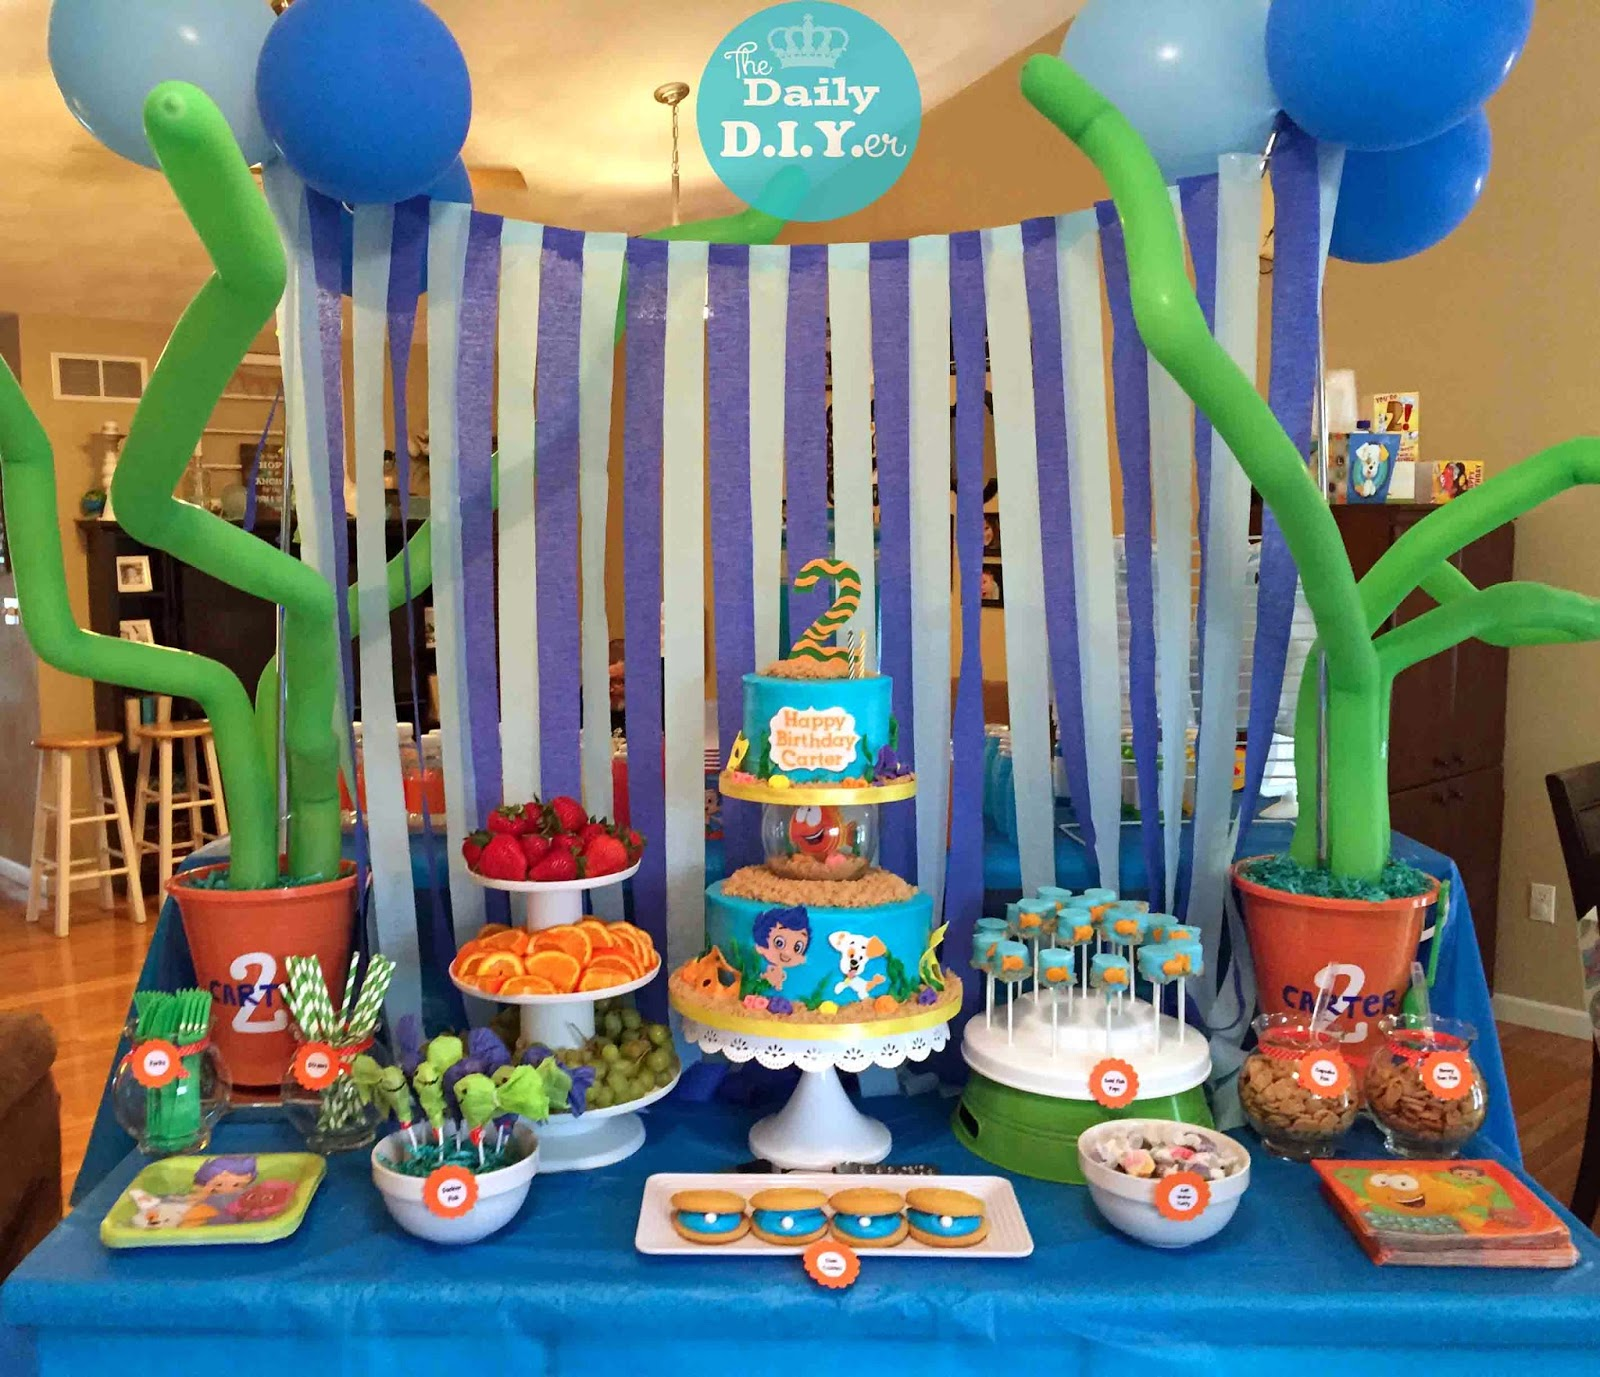 the daily diyer bubble guppies party food